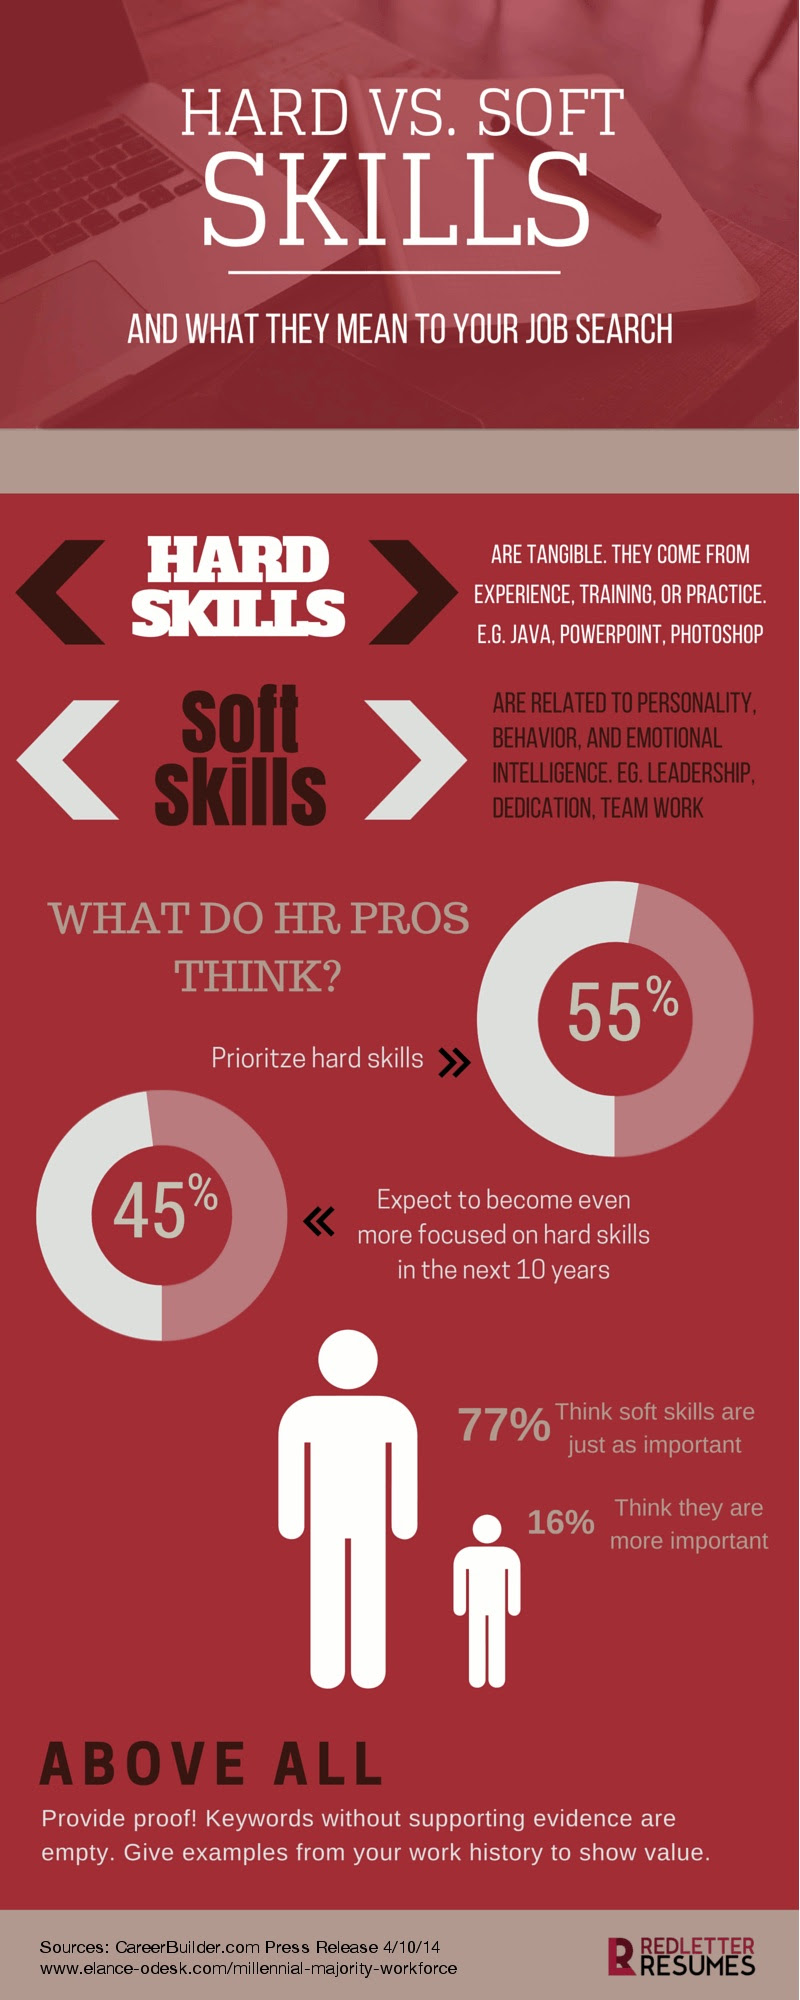 Hard Skills vs. Soft Skills: What They Mean to Your Job Search and the Weight They Carry With HR